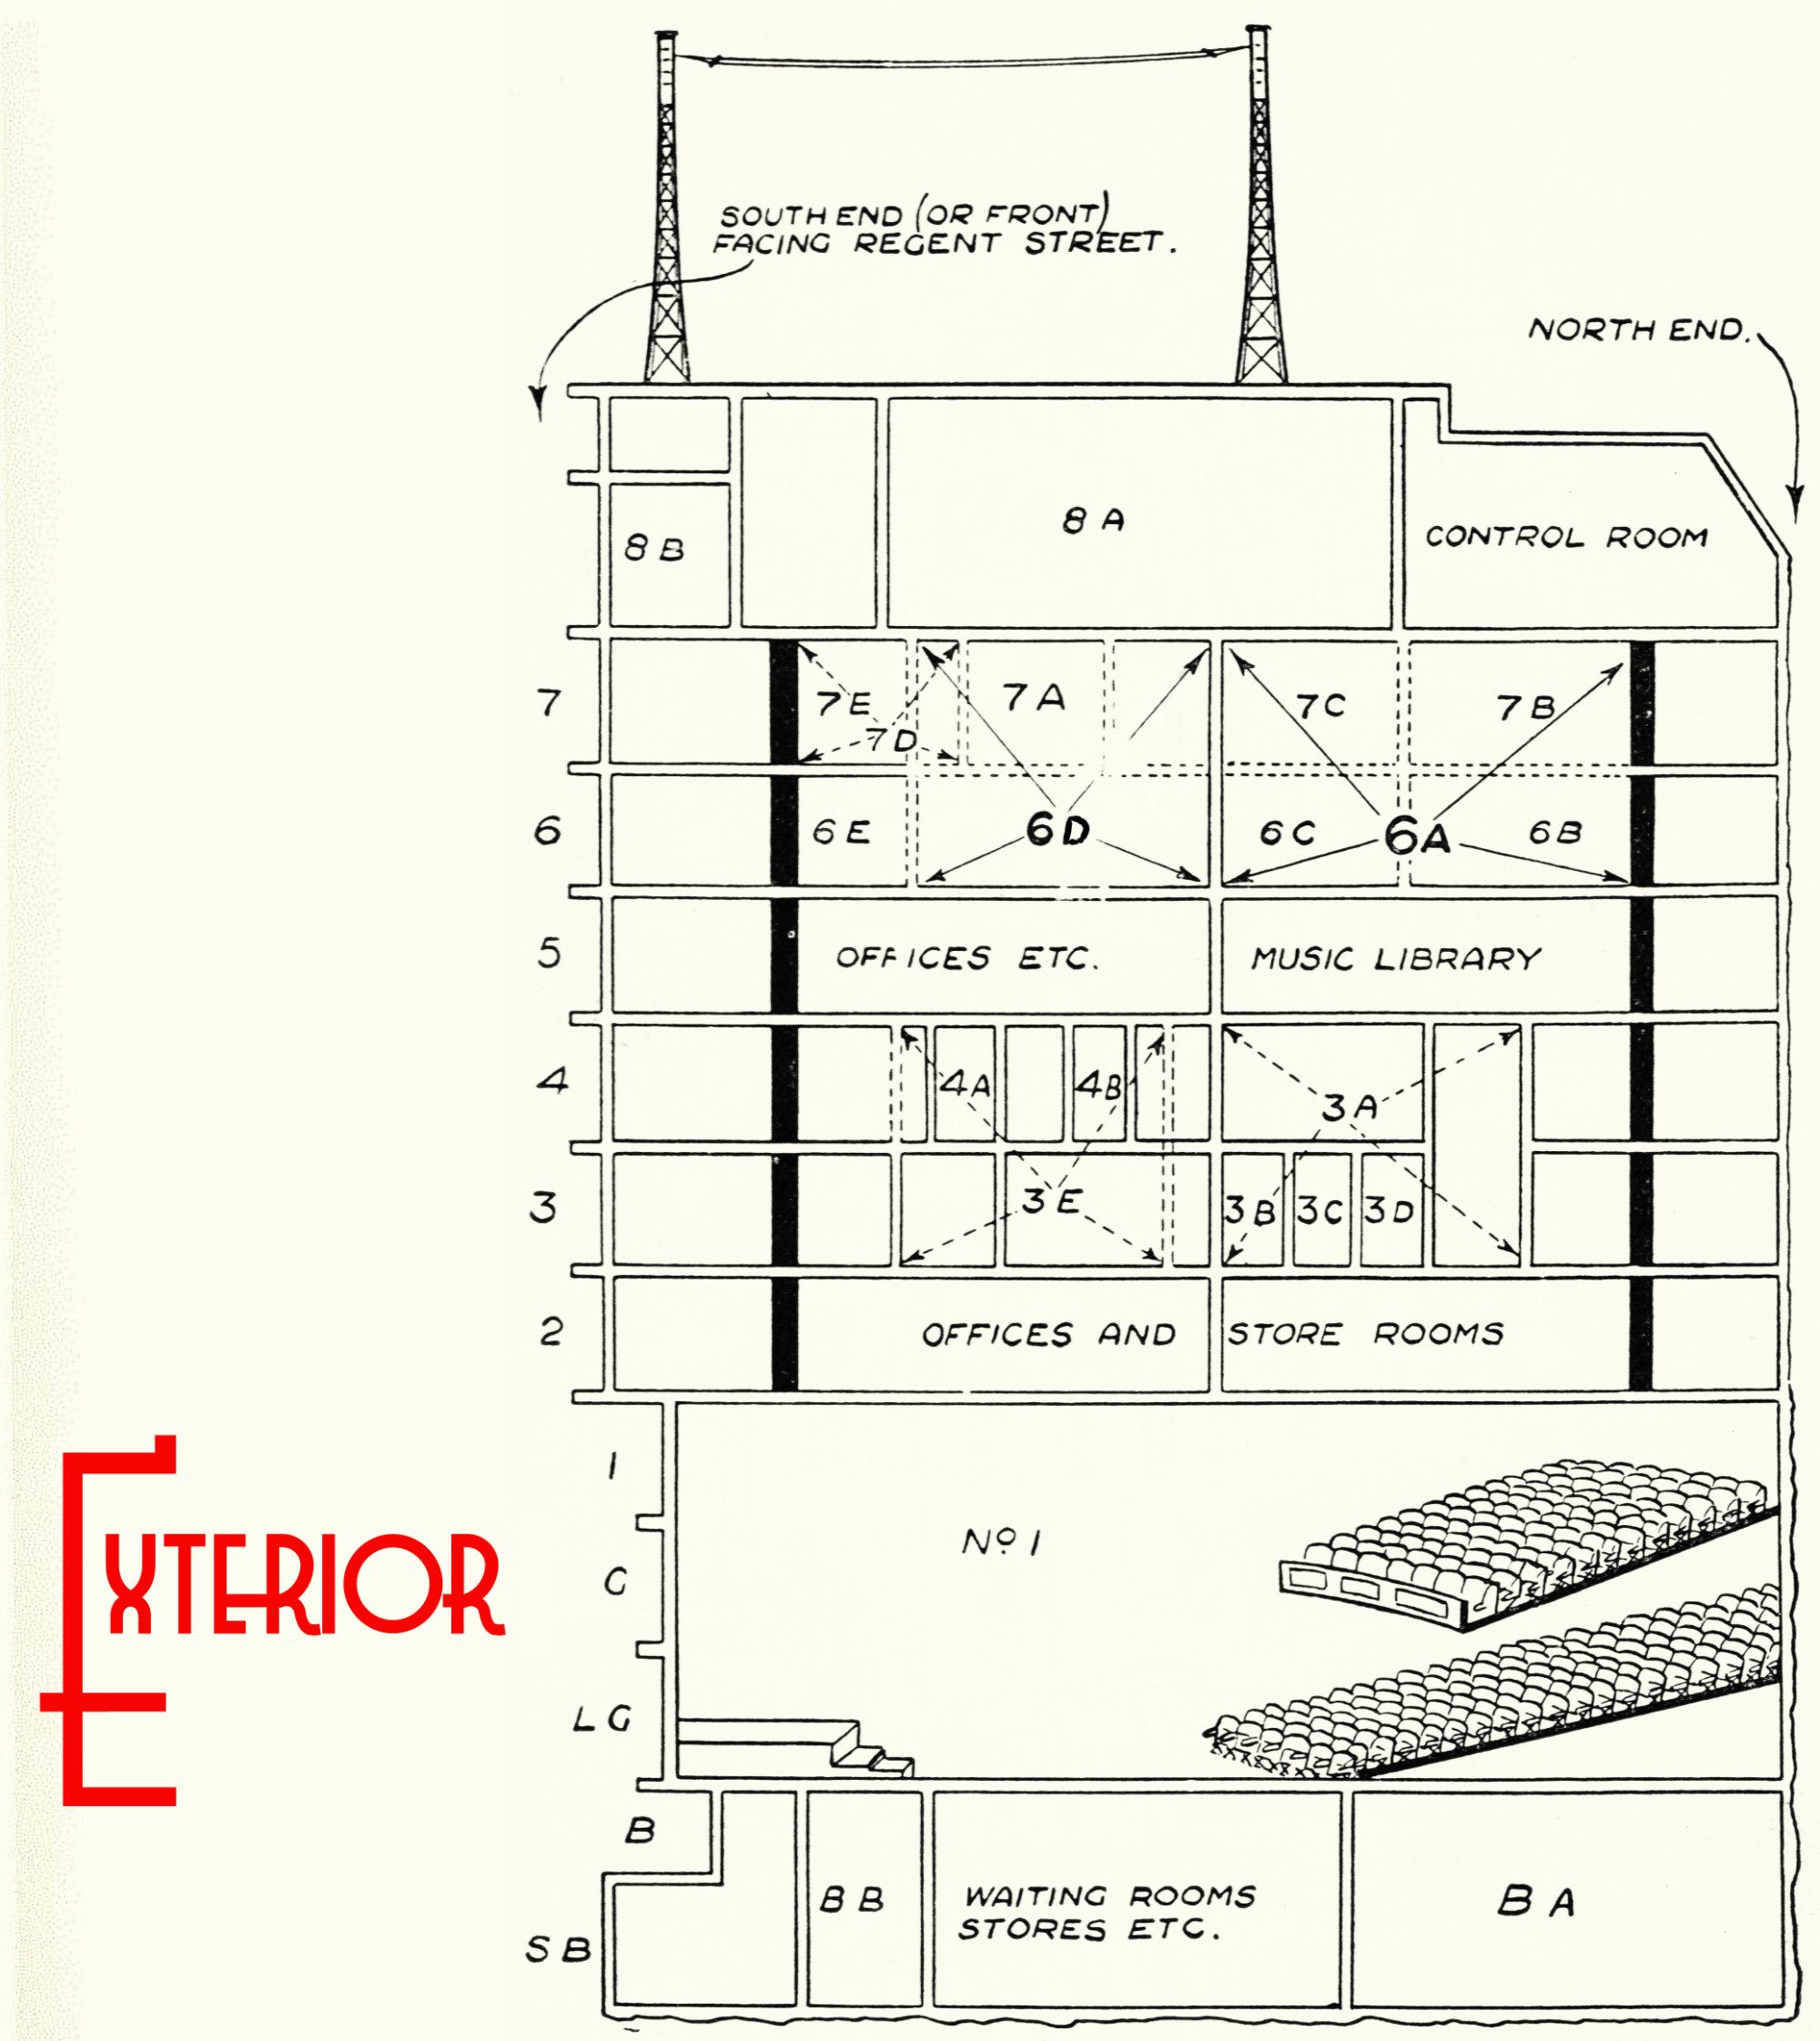 Cutaway plan of the building